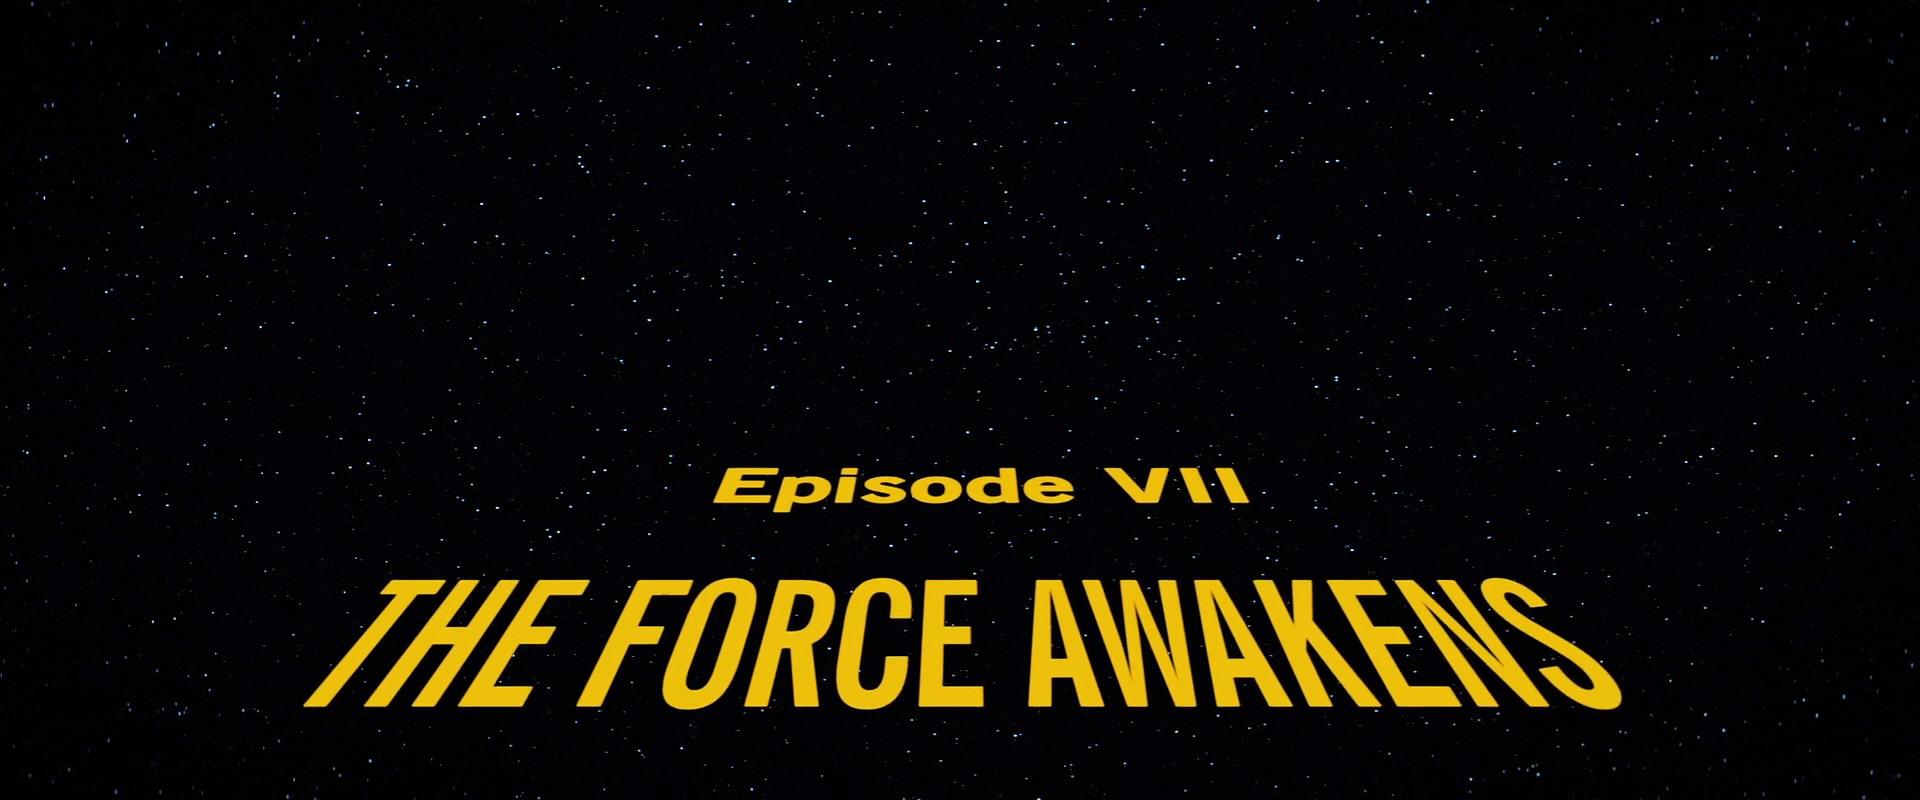 Star Wars: Episode VII U2013 The Force Awakens (2015)